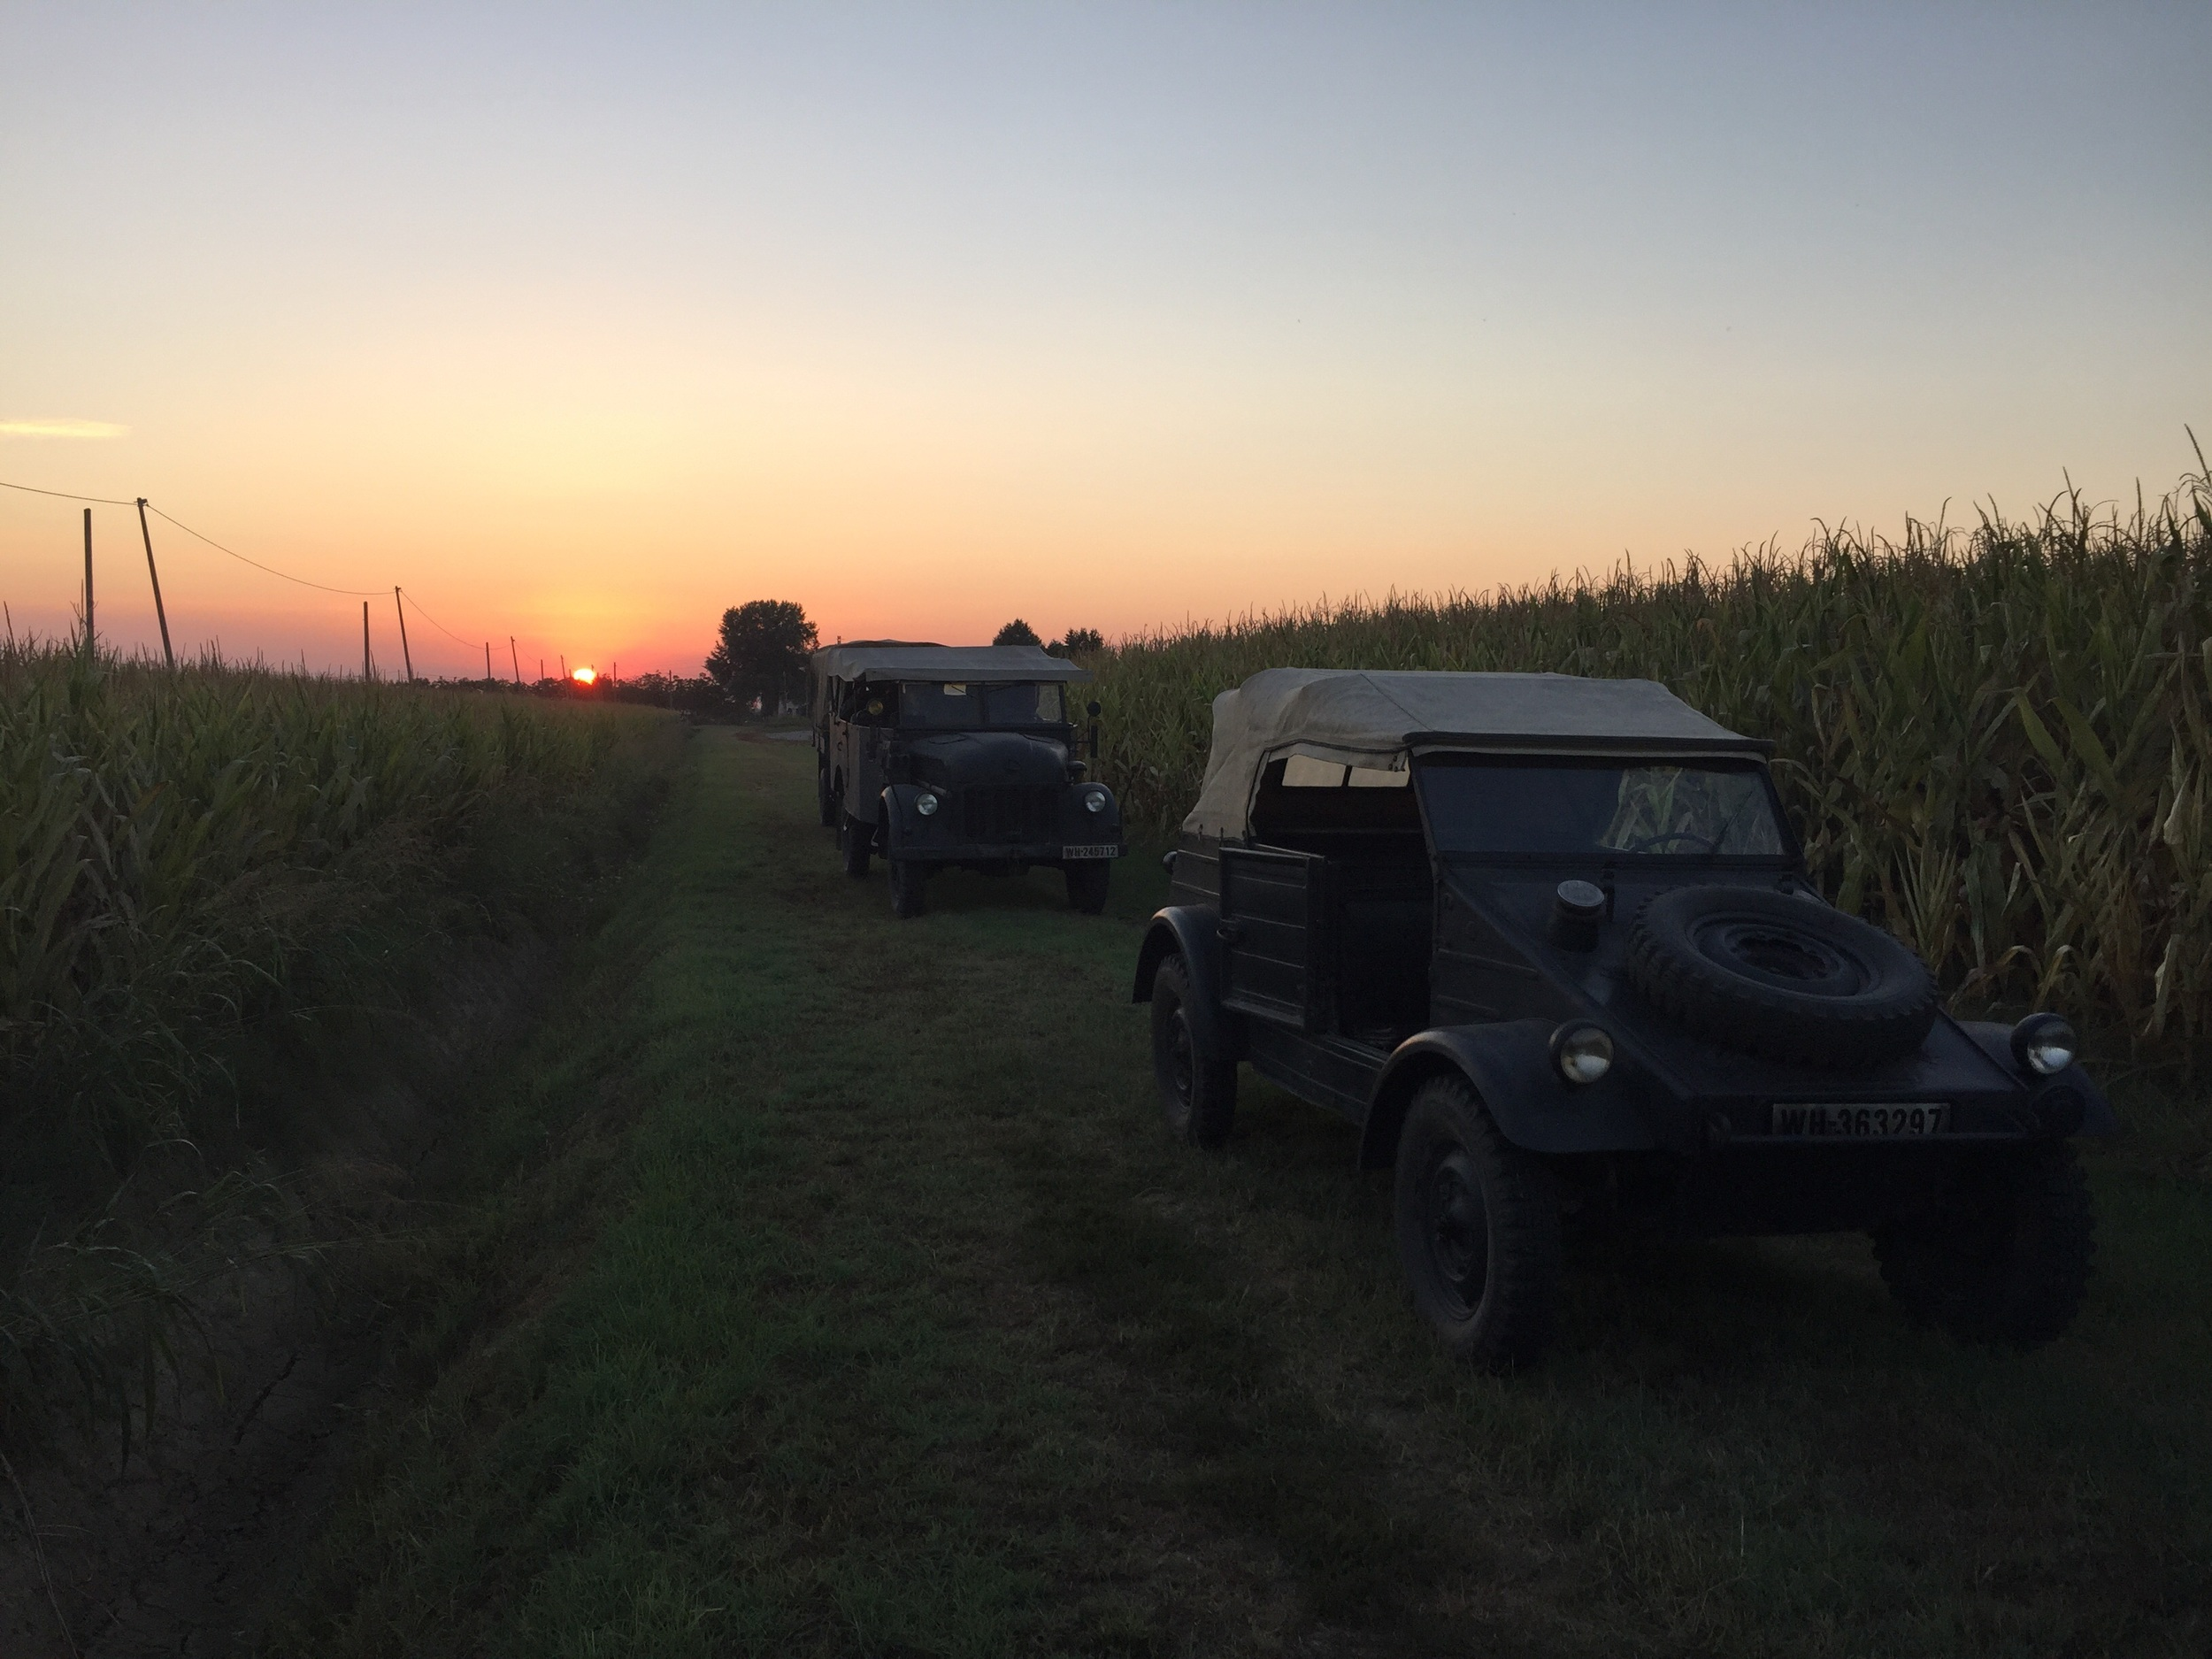 """Kübelwagen"", Steyr 1500A in front of the sunset"